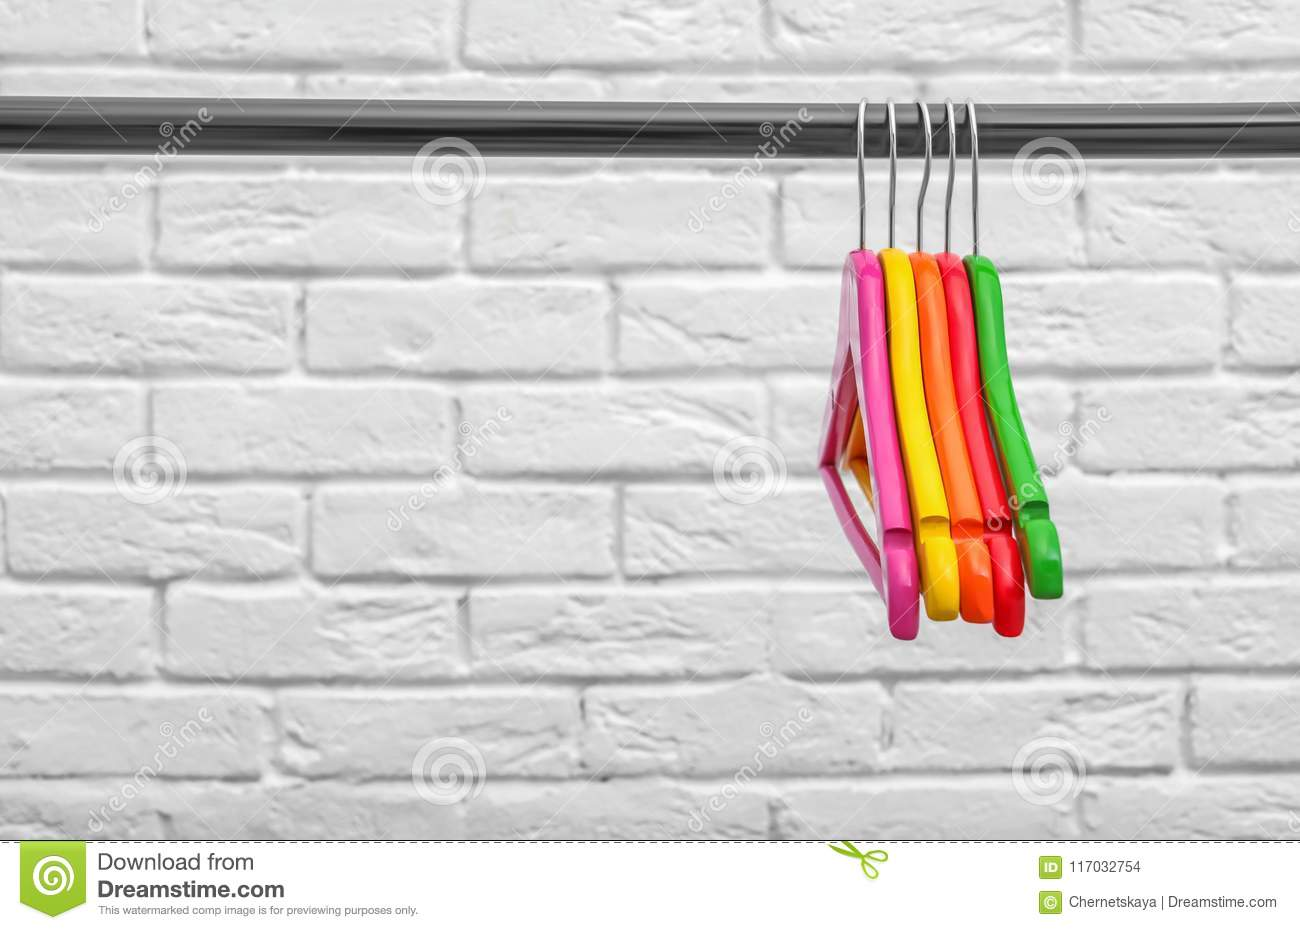 Clothes Hangers On Metal Rail Against Wall Background Stock